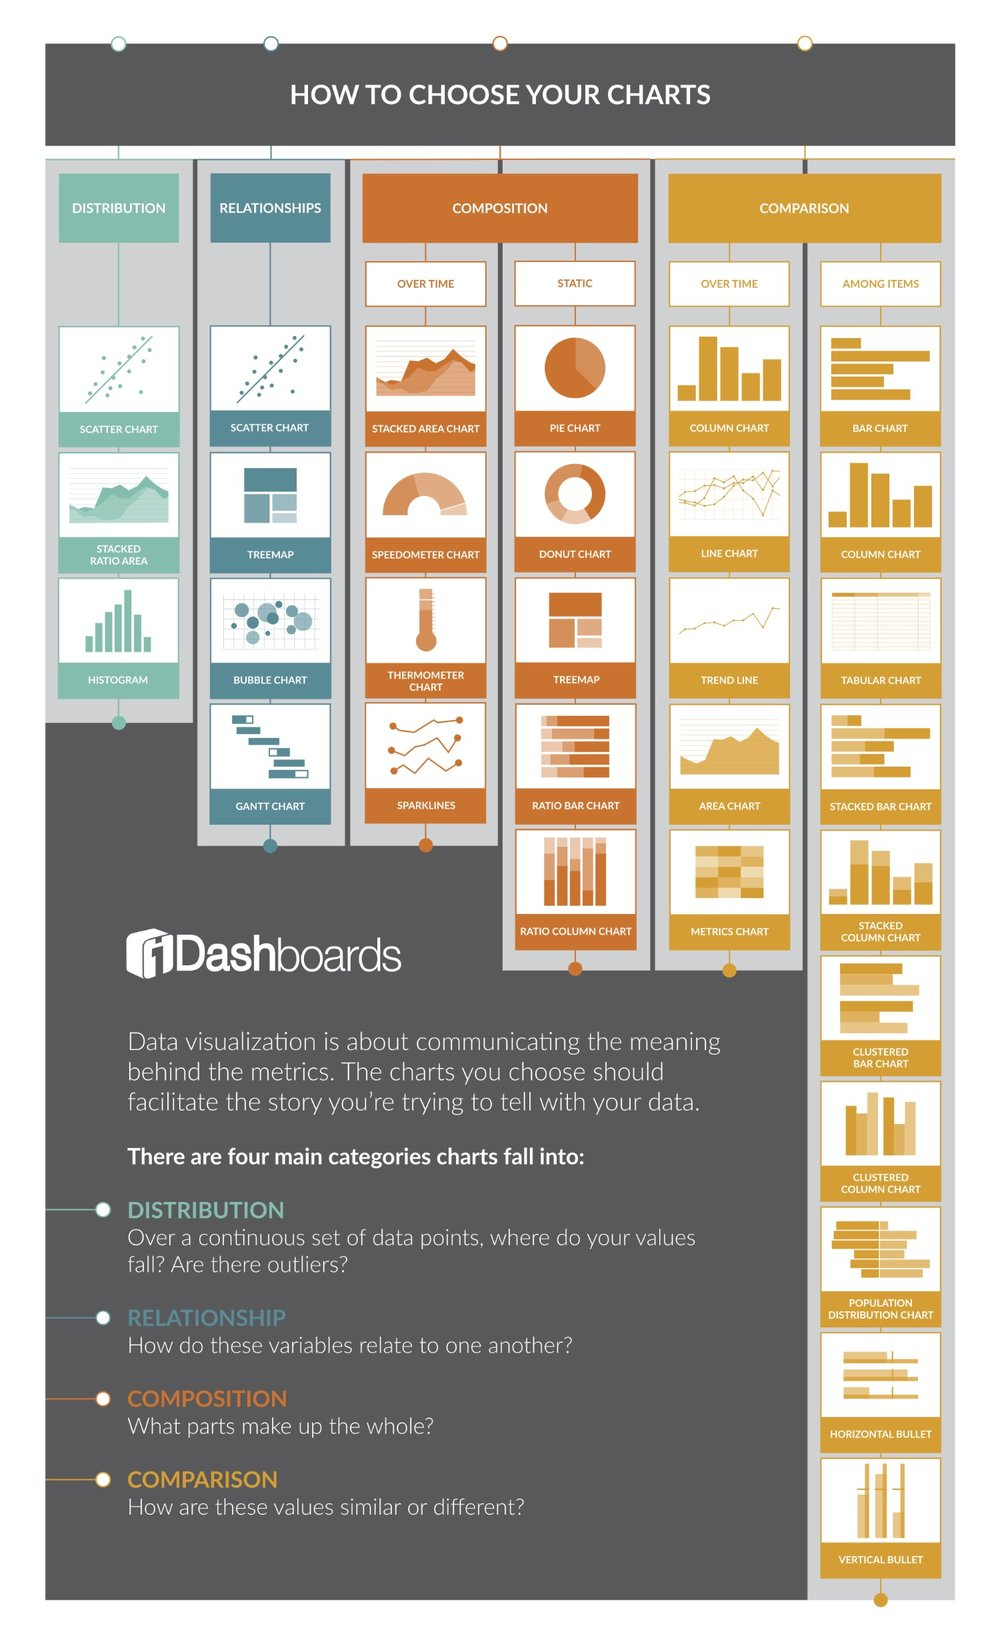 How-to-choose-your-charts-iDashboards.jpg